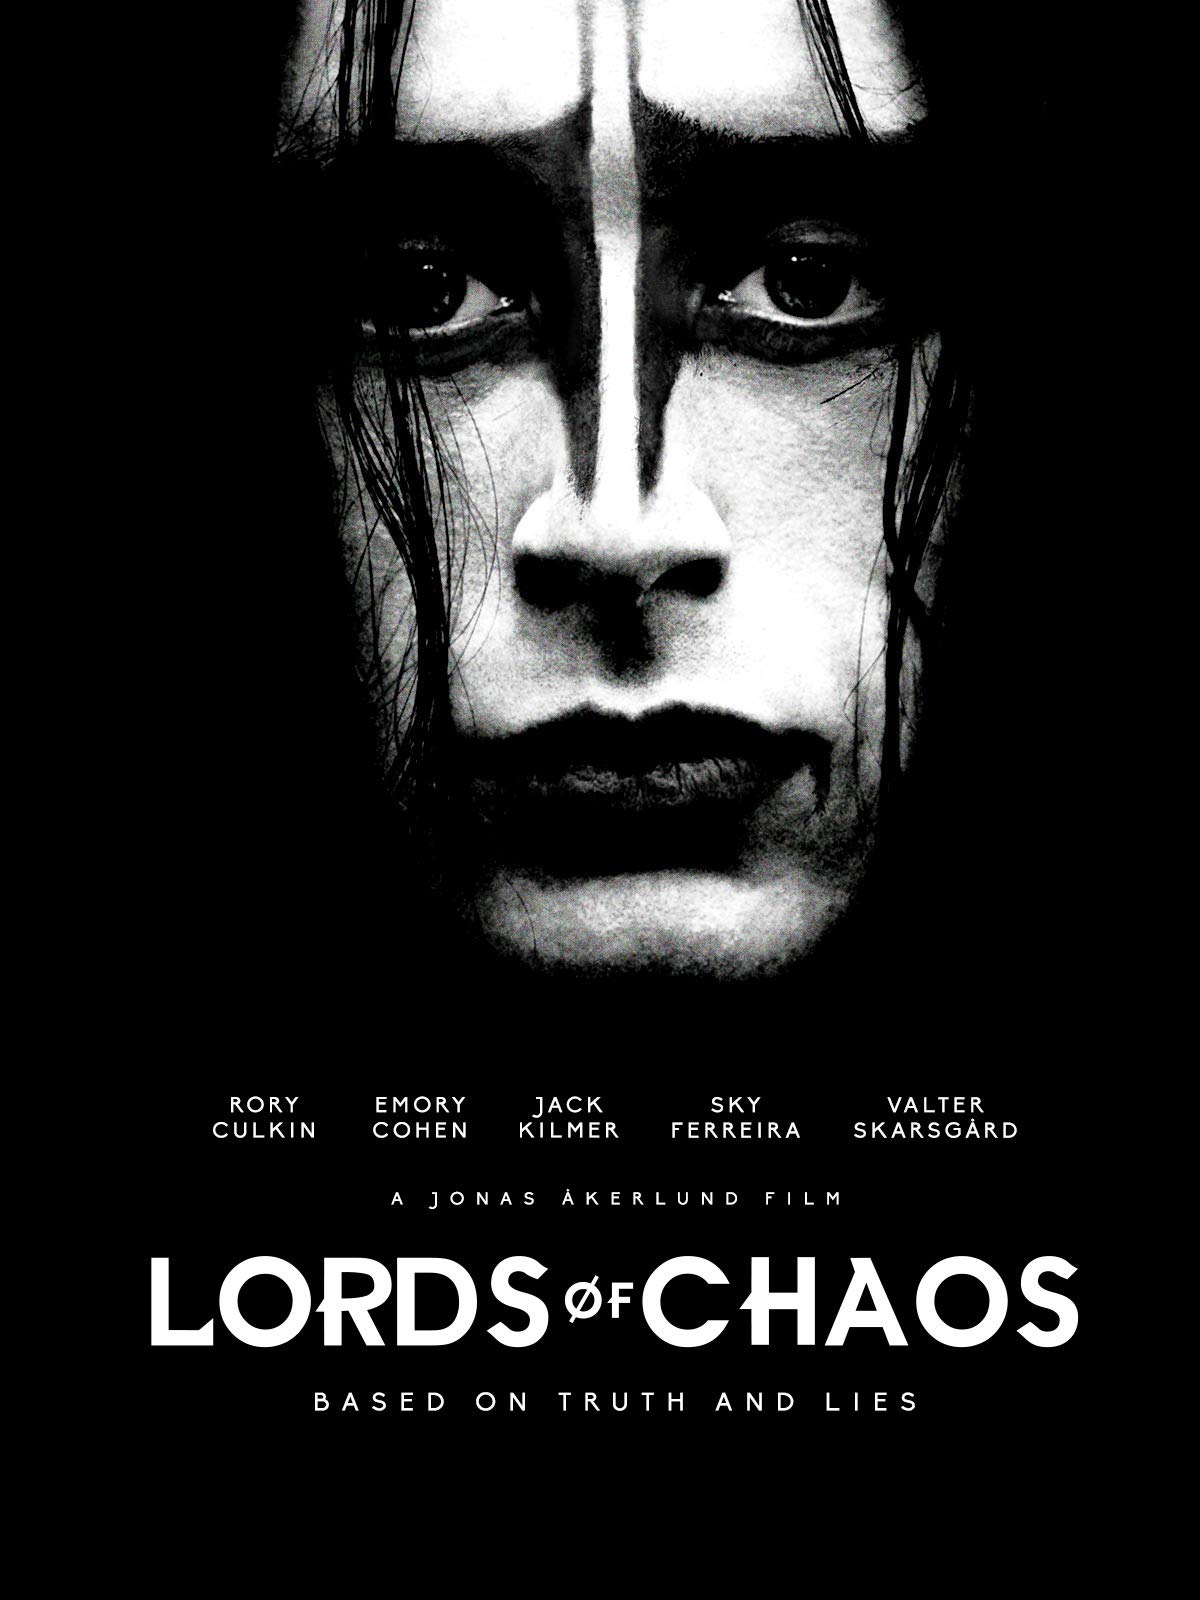 lords of chaos movie online free